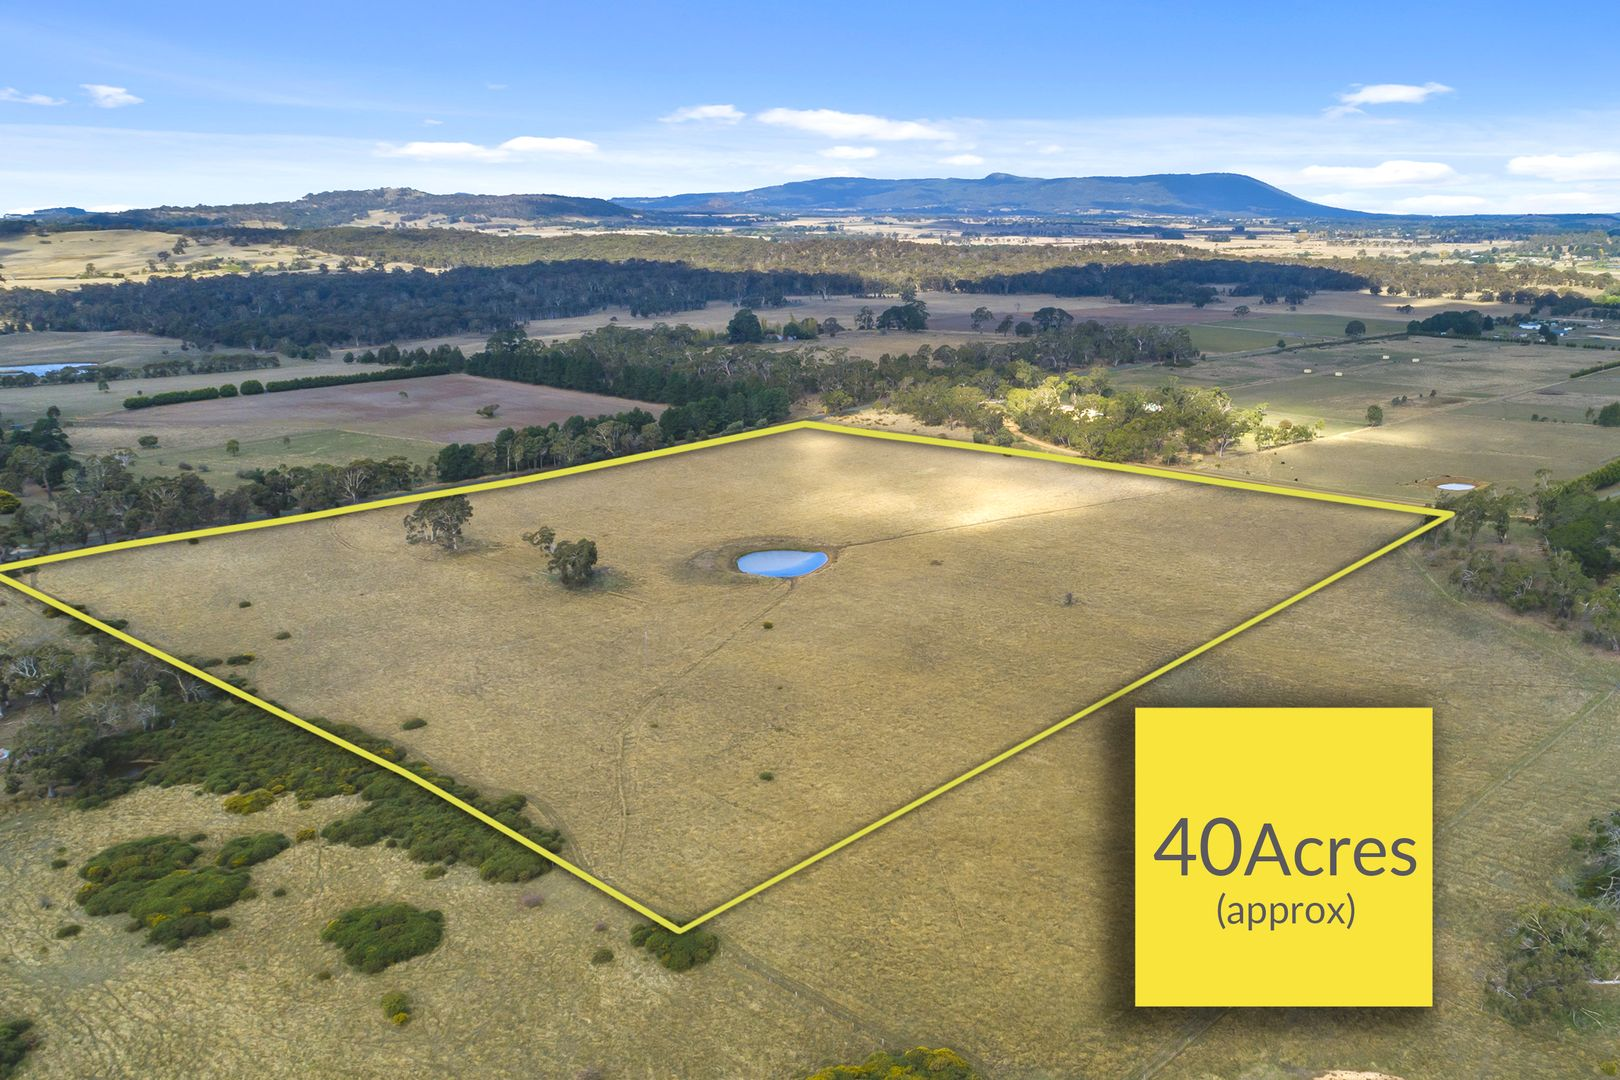 Lot 1 Crn Chases Lane & Williatts Lane, Pipers Creek VIC 3444, Image 1